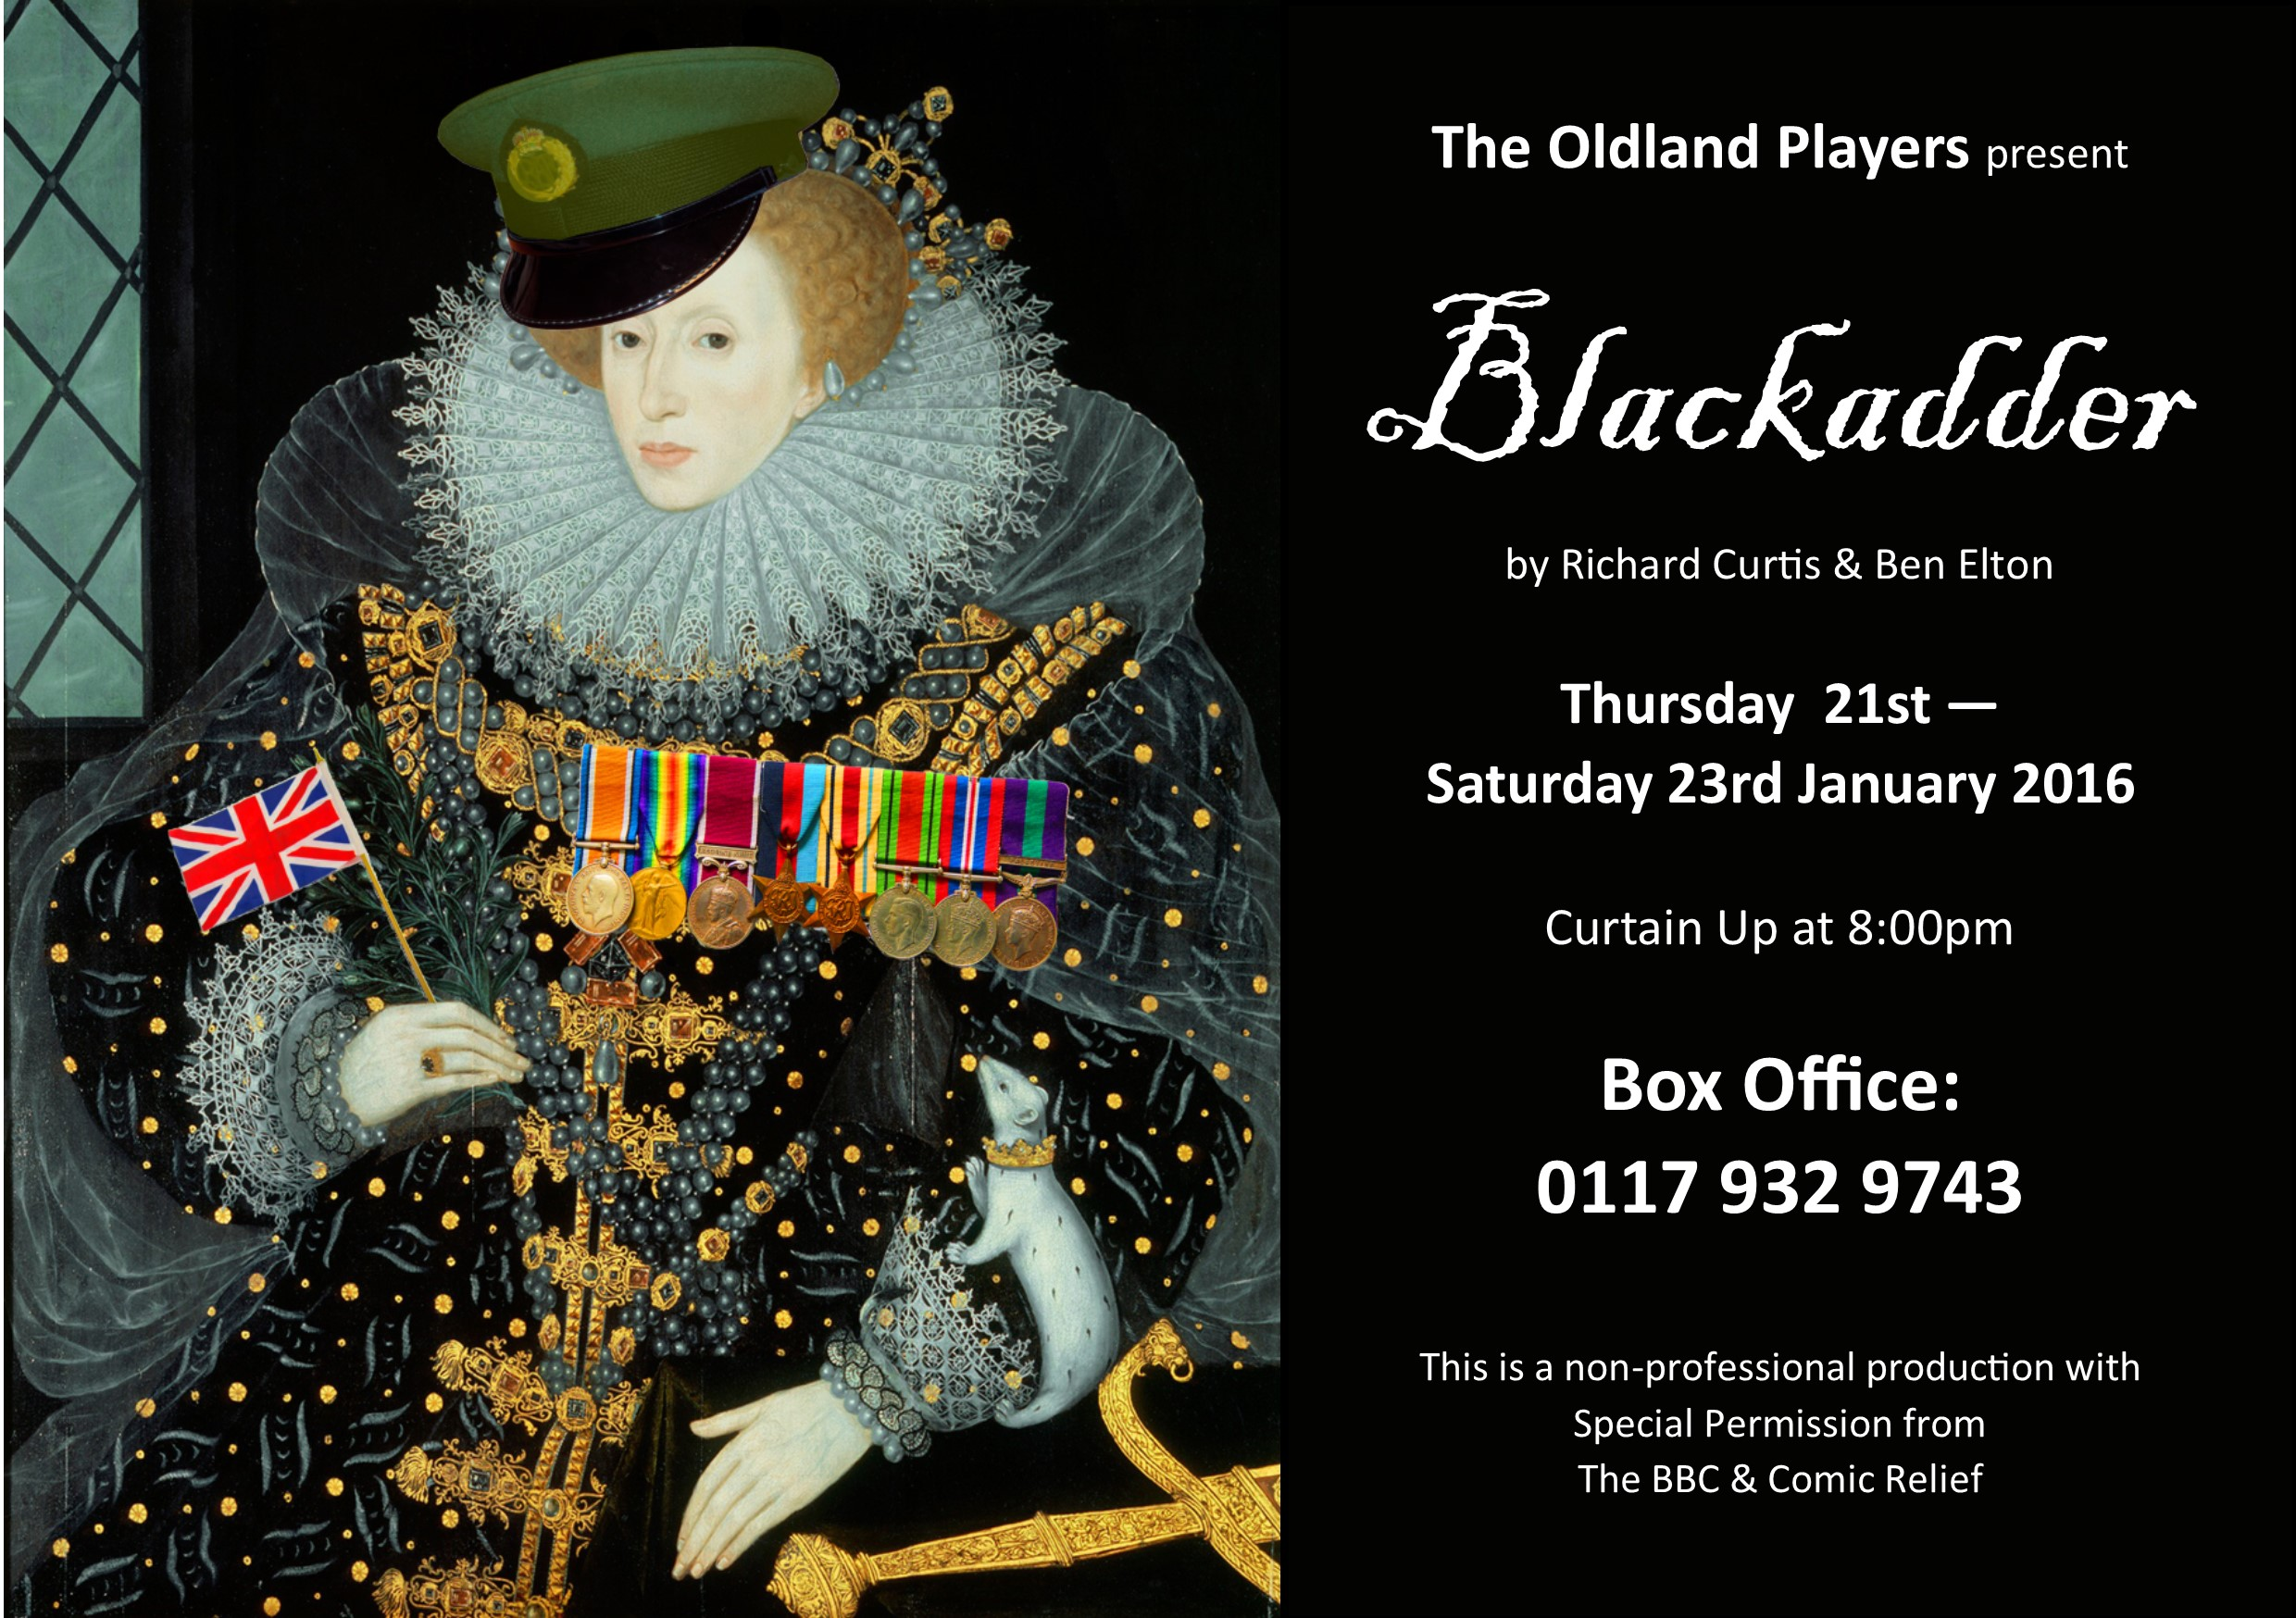 Blackadder flyer